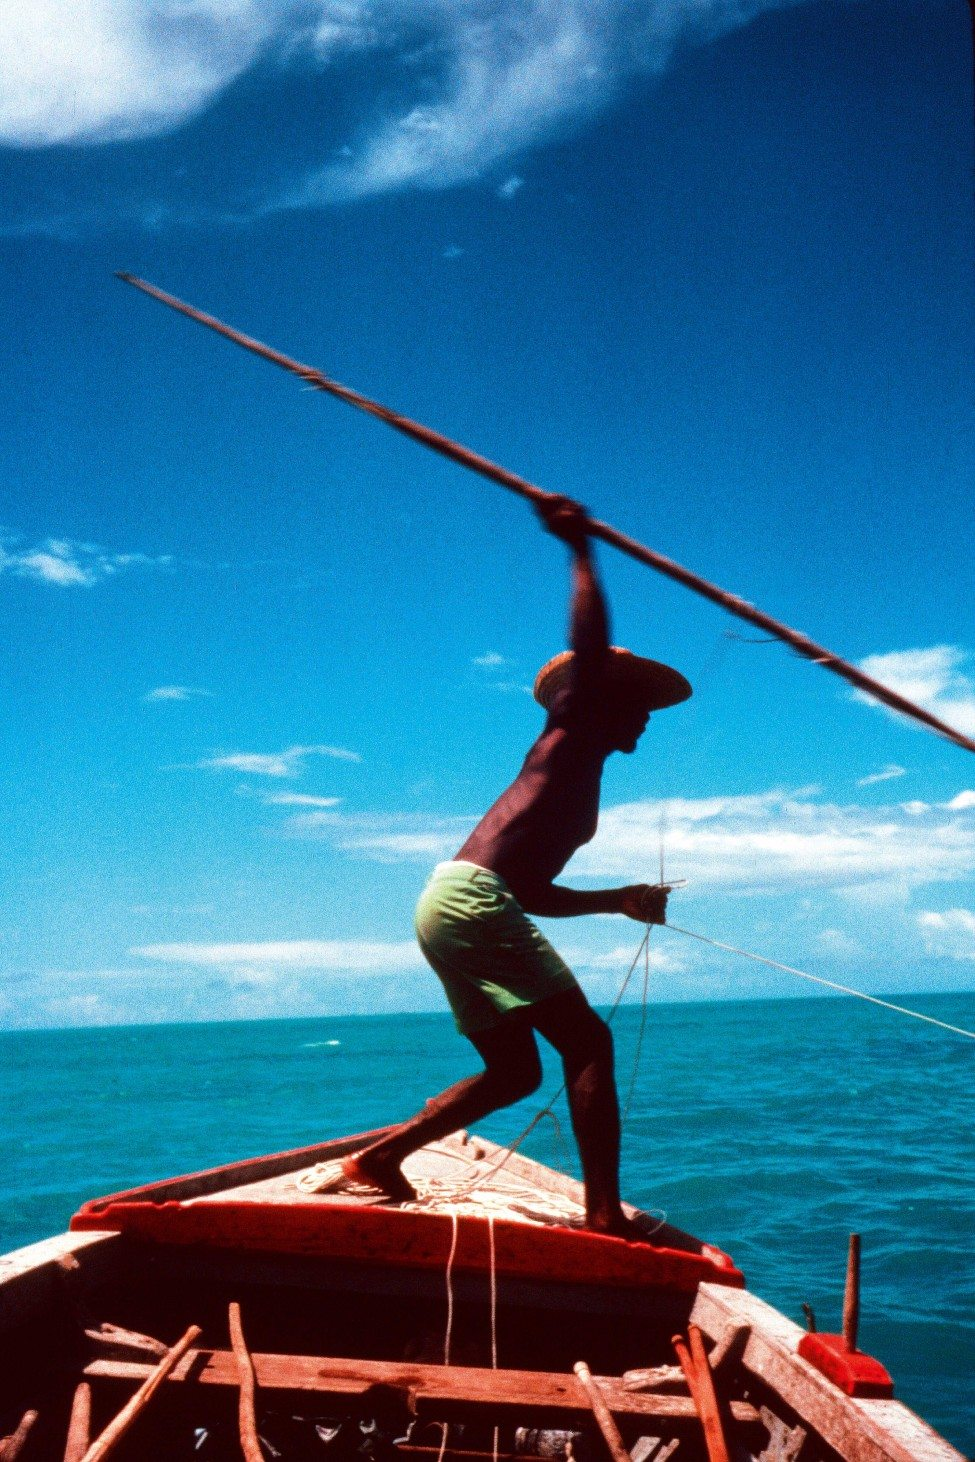 A turtle hunter aiming a harpoon at an adult green turtle at Cosmoledo Atoll in 1982. The harpoon head, which is attached to a cord held by the hunter, will enter the turtle's carapace and dislodge from the 'baton'. The hunter will then reel in the turtle by the cord.<br />